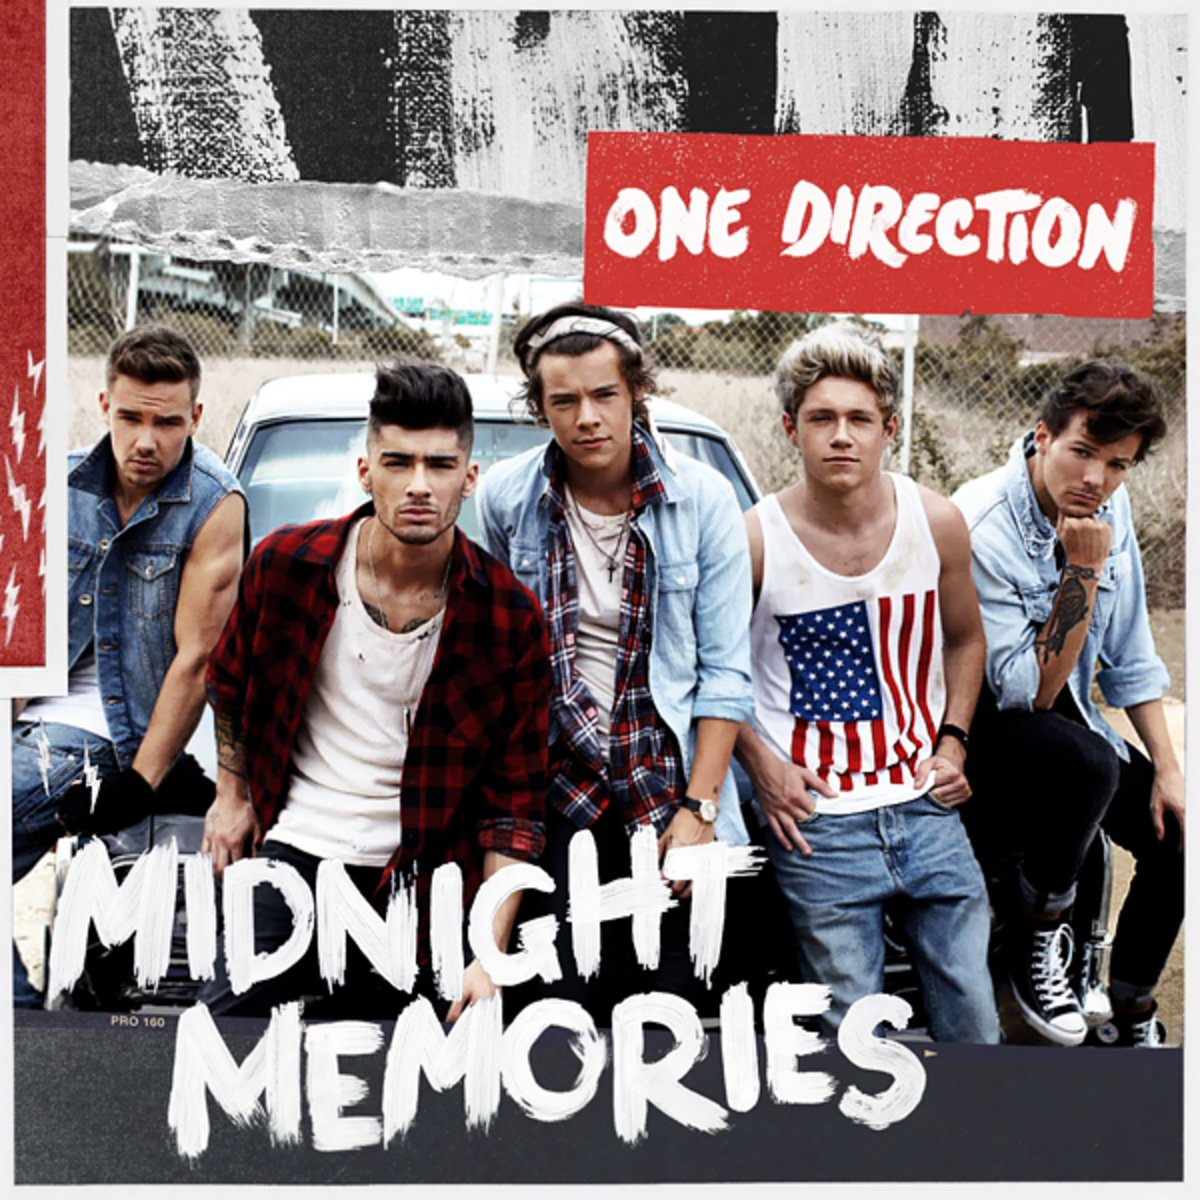 Midnight memories songs download | midnight memories songs mp3.